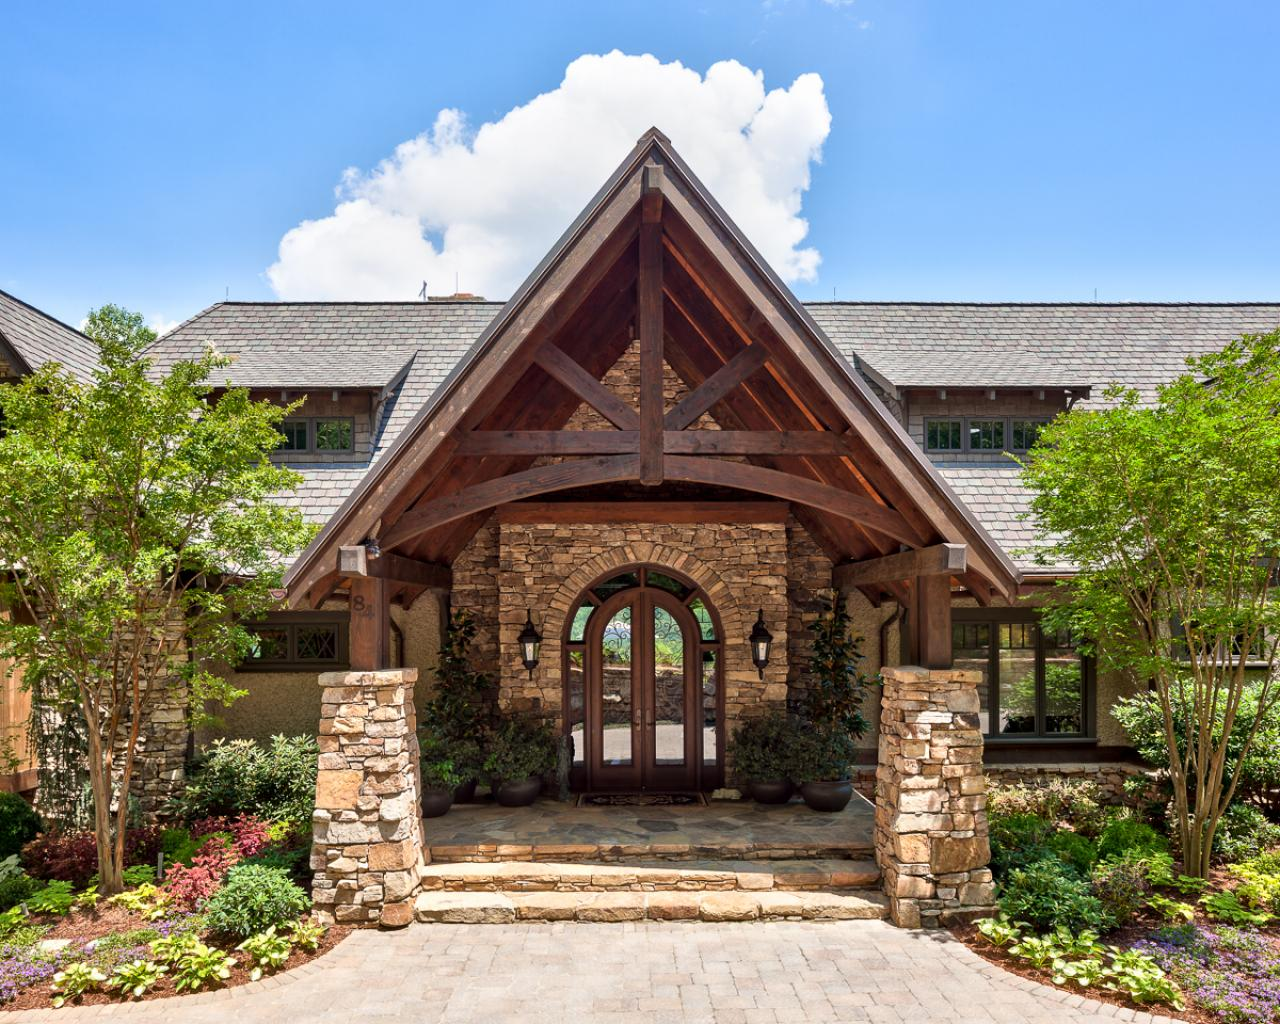 Rustic Mountain Retreat With Stone Exterior And Grand Entryway A New Entry For This Renovated Home Exteriors